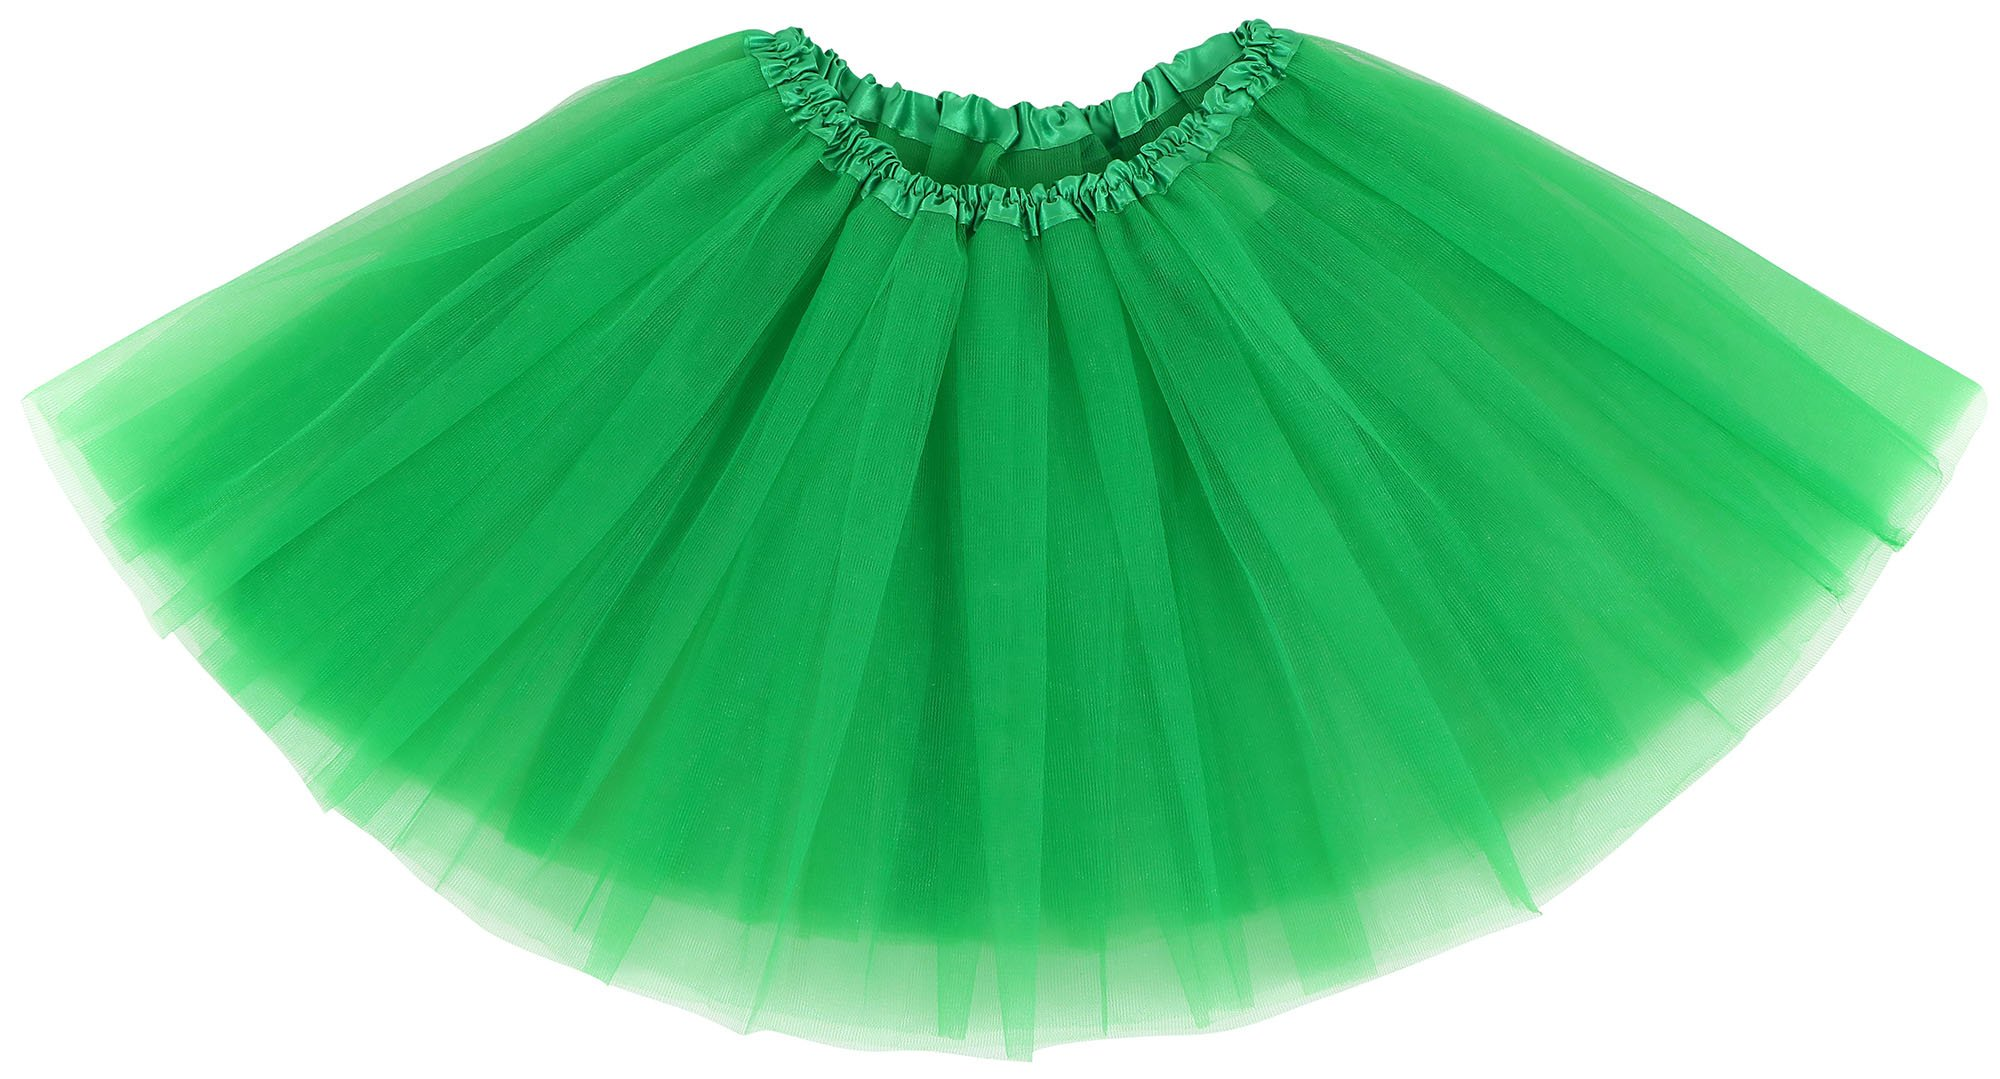 Simplicity Women's Classic Elastic, 3-Layered Tulle Tutu Skirt, Dark Green, One Size